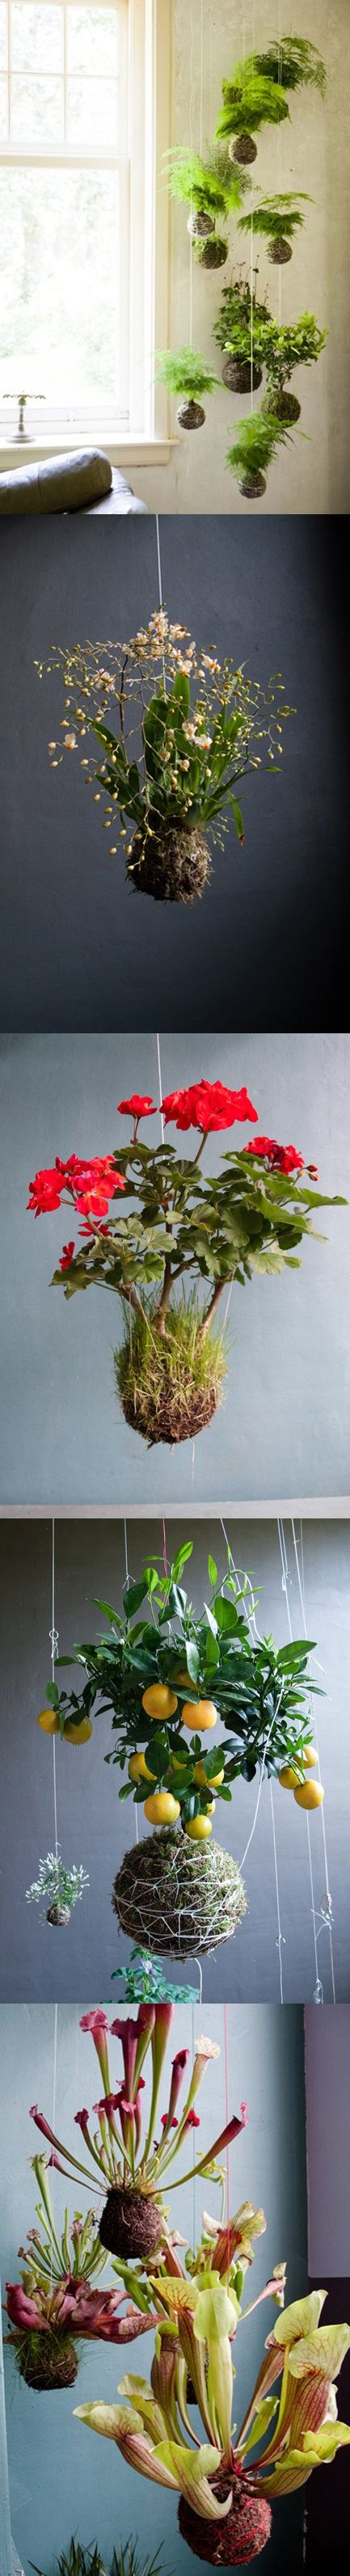 kokedama — Japanese moss string balls adapted to other plants. SOO COOL!